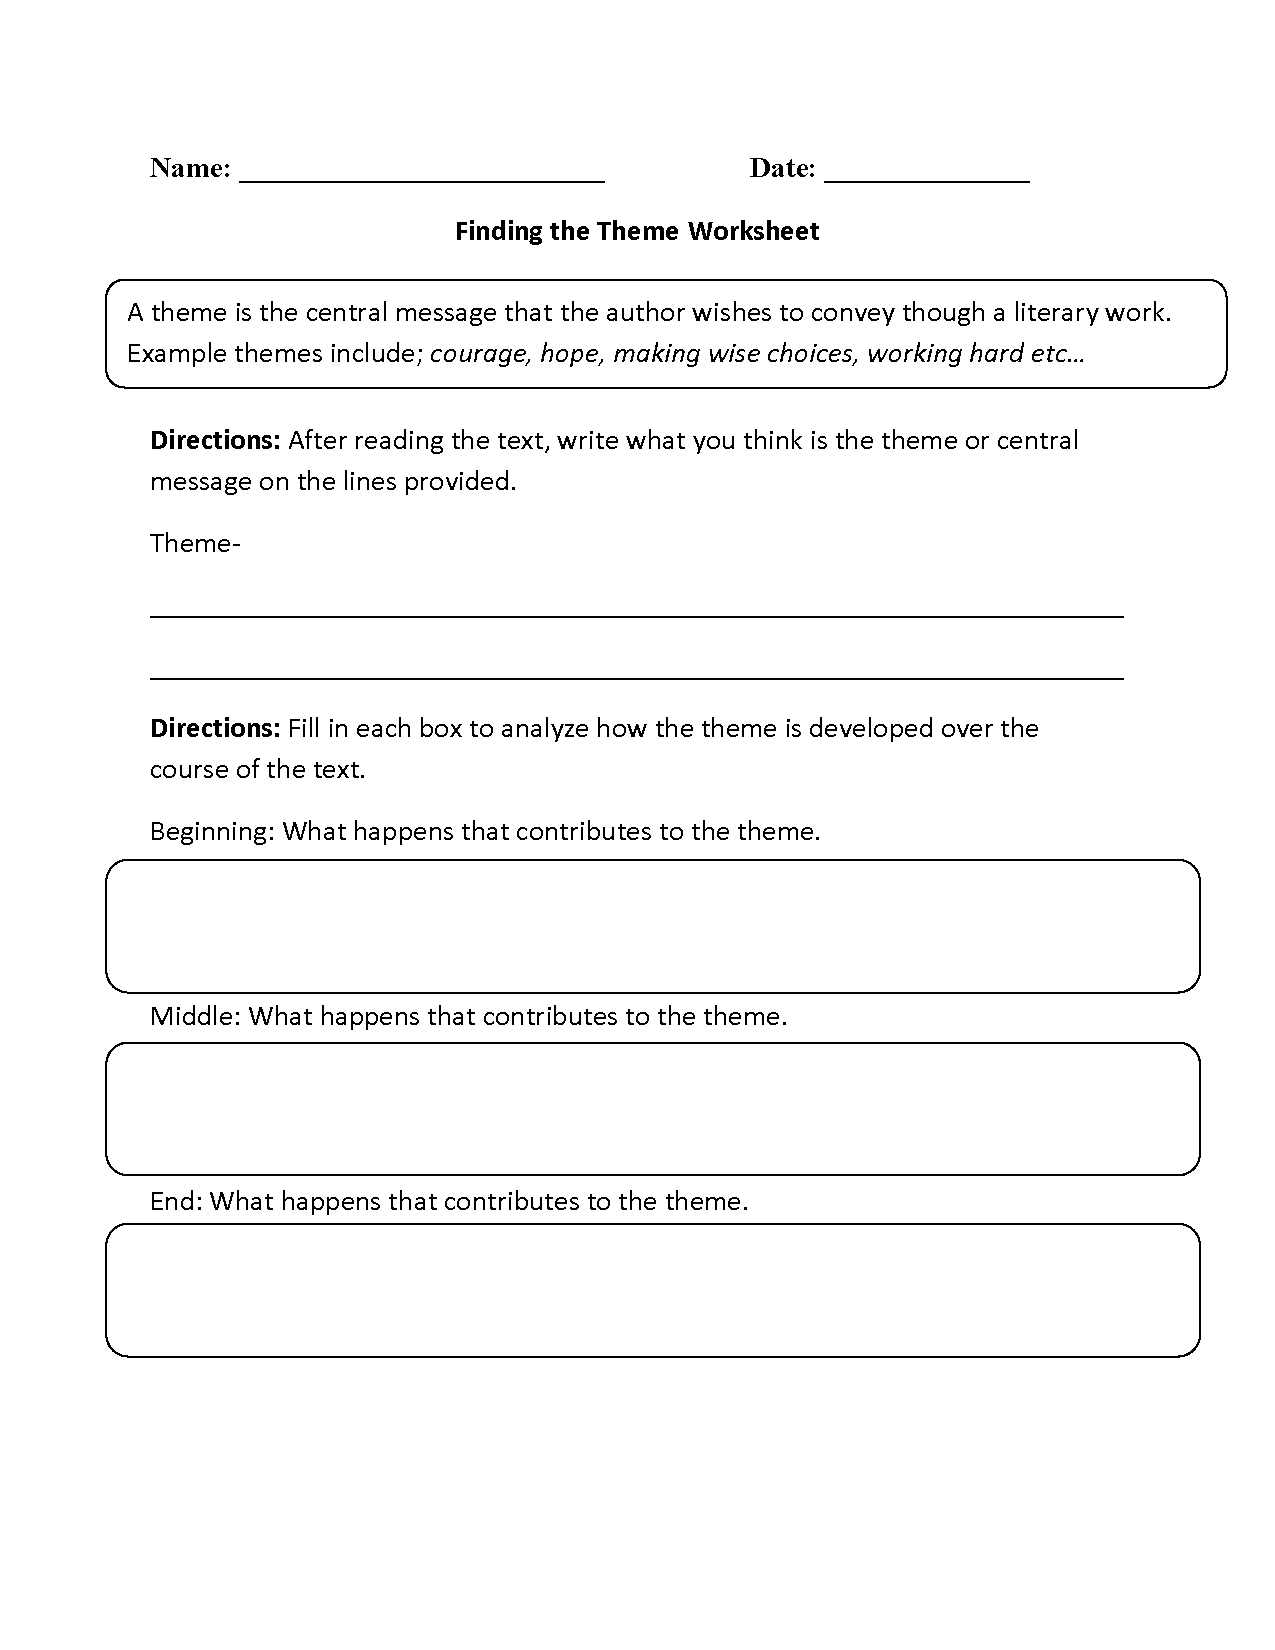 Worksheets Theme Worksheets 5th Grade englishlinx com theme worksheets grades k 5 worksheets